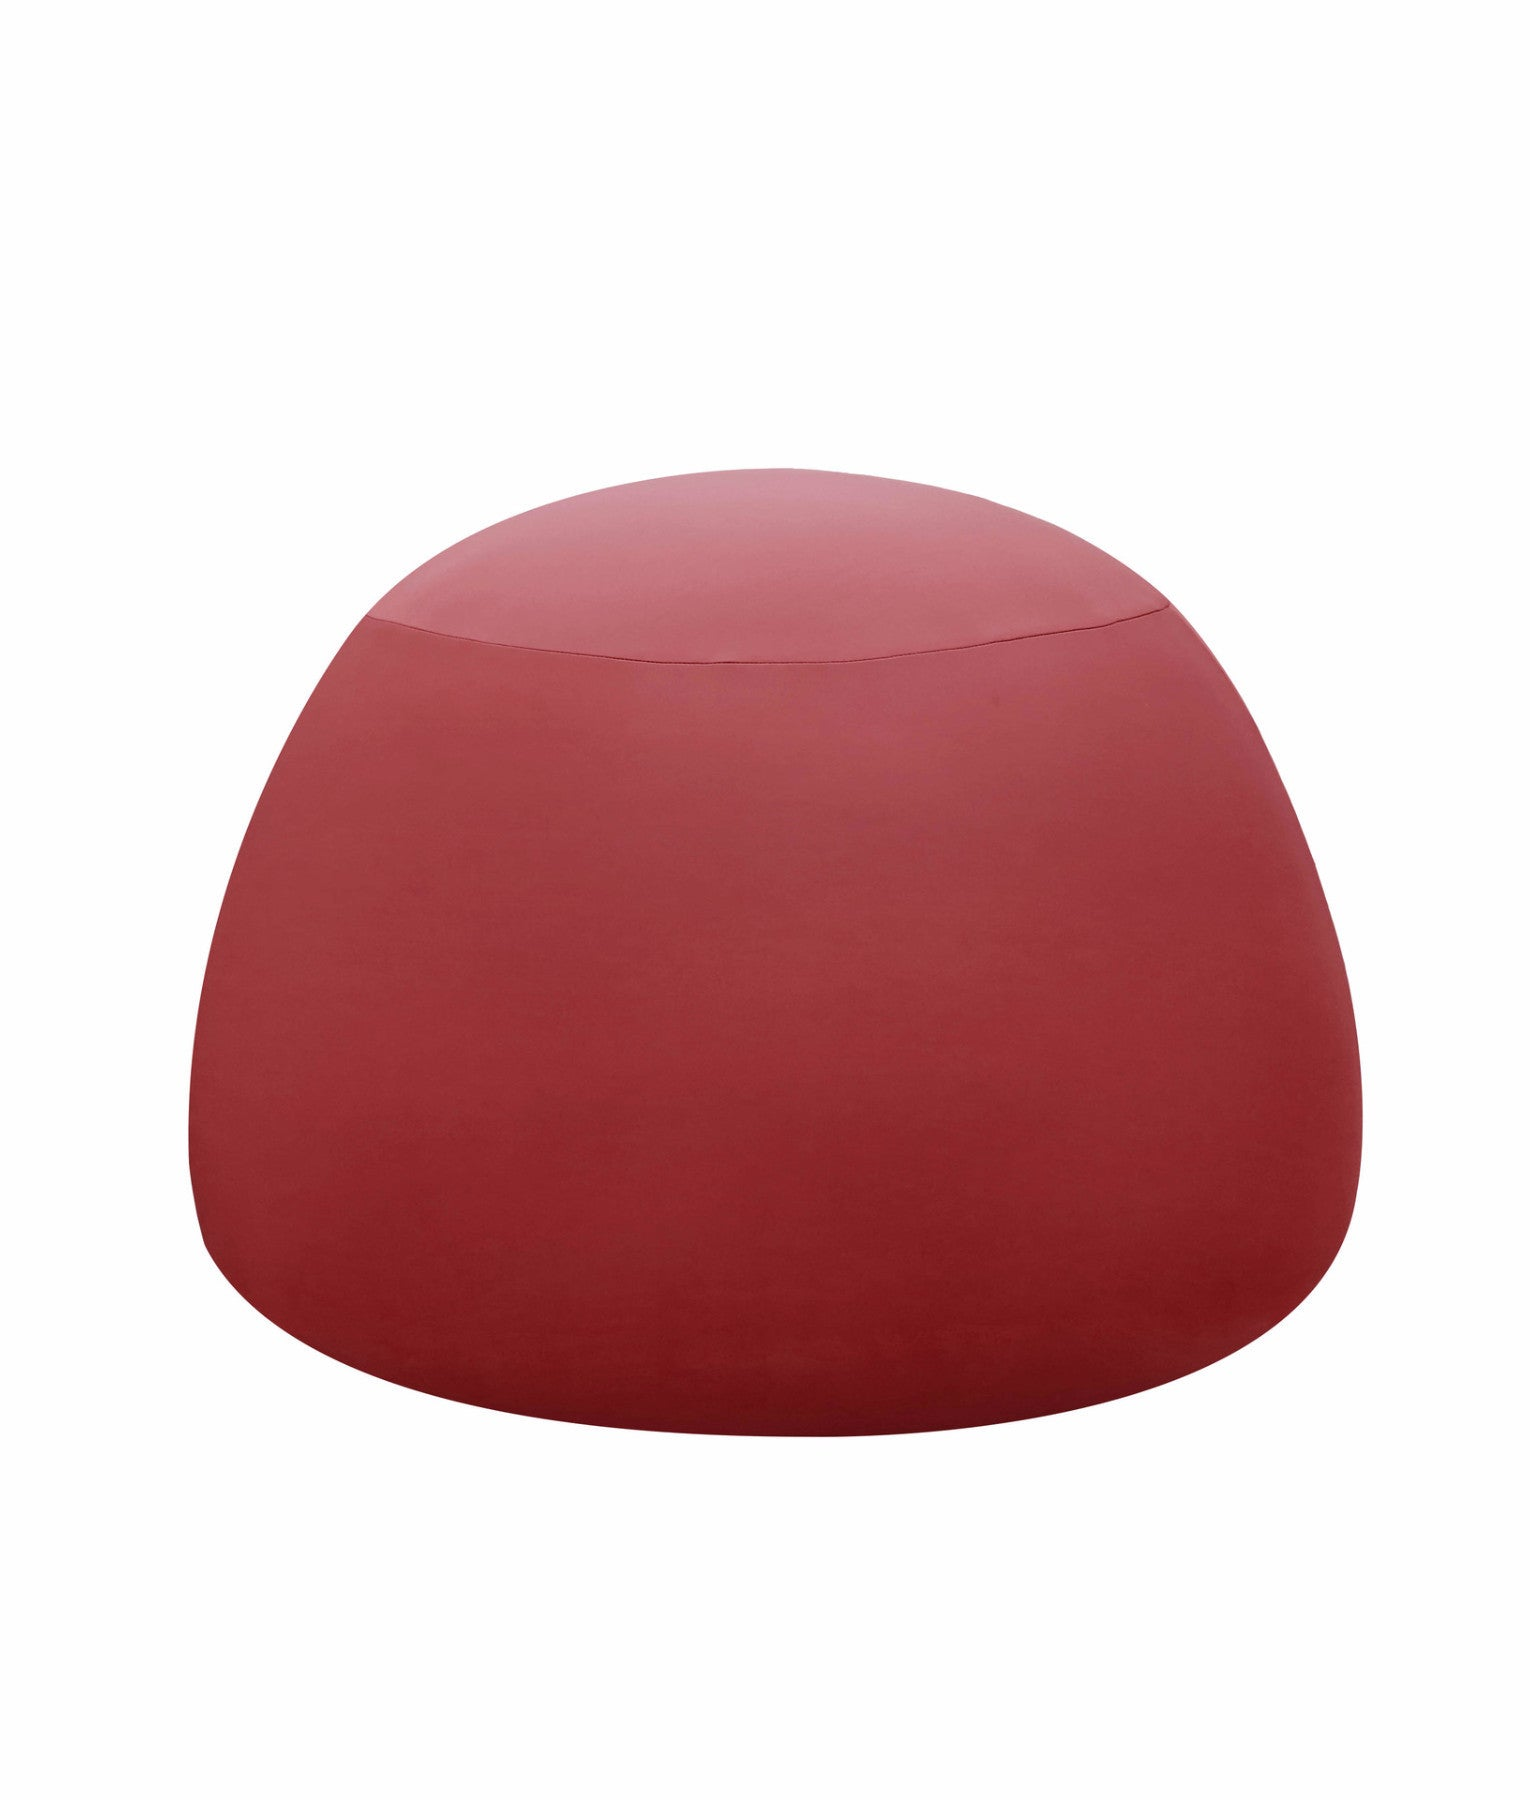 POTiiiN BEAN BAG Rose Red